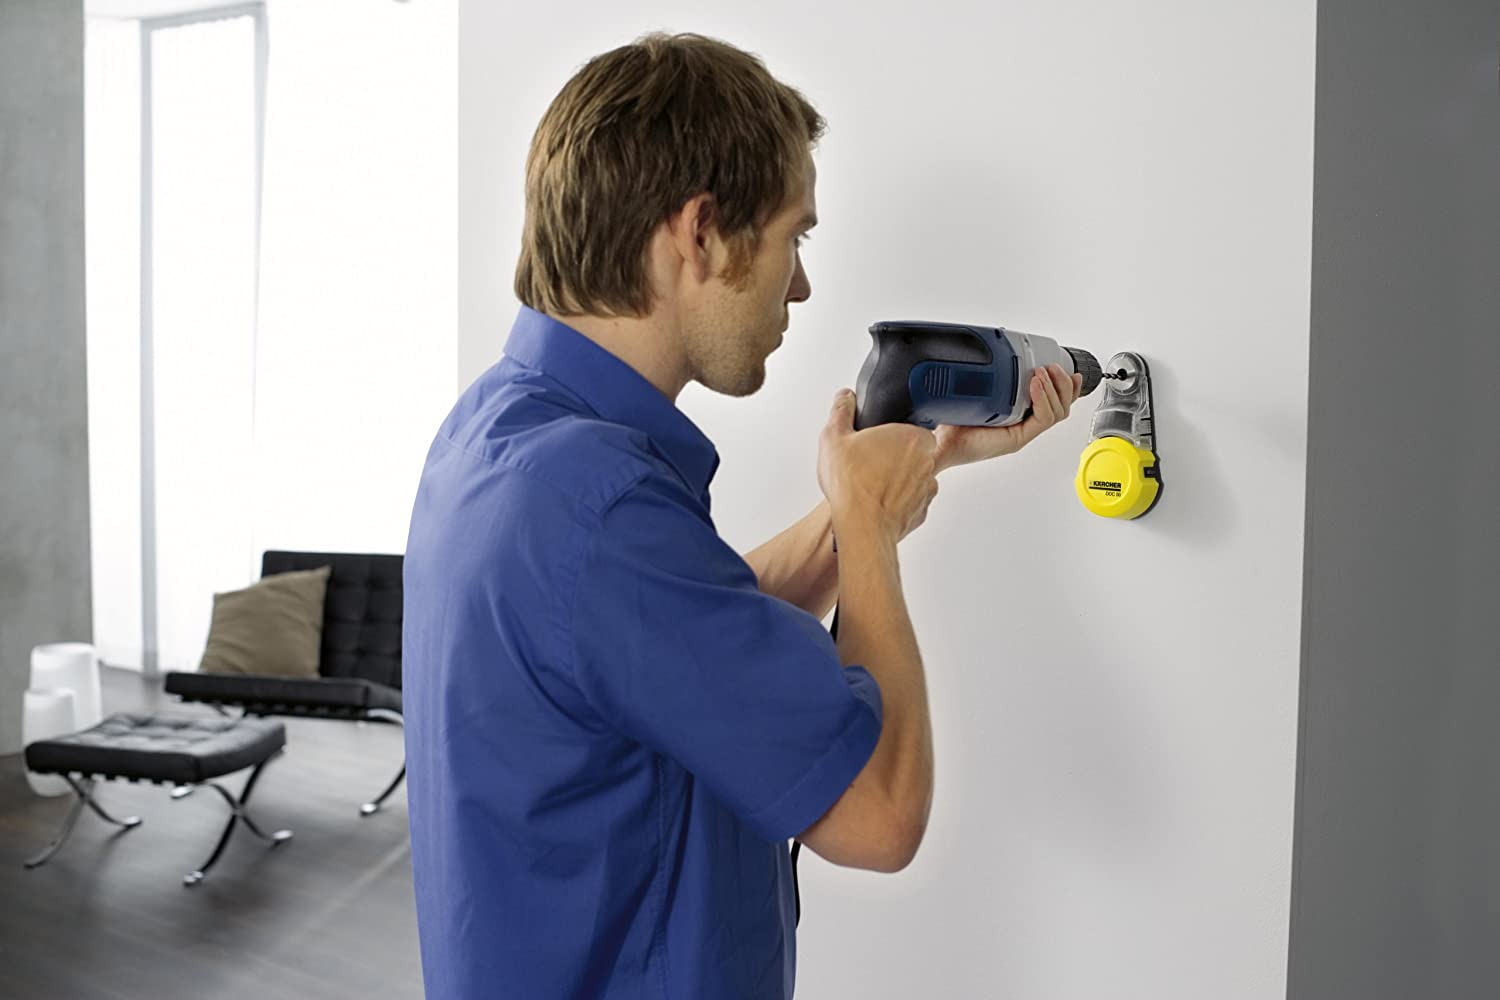 Post it note as a collector while drilling - Post It Note As A Collector While Drilling 6